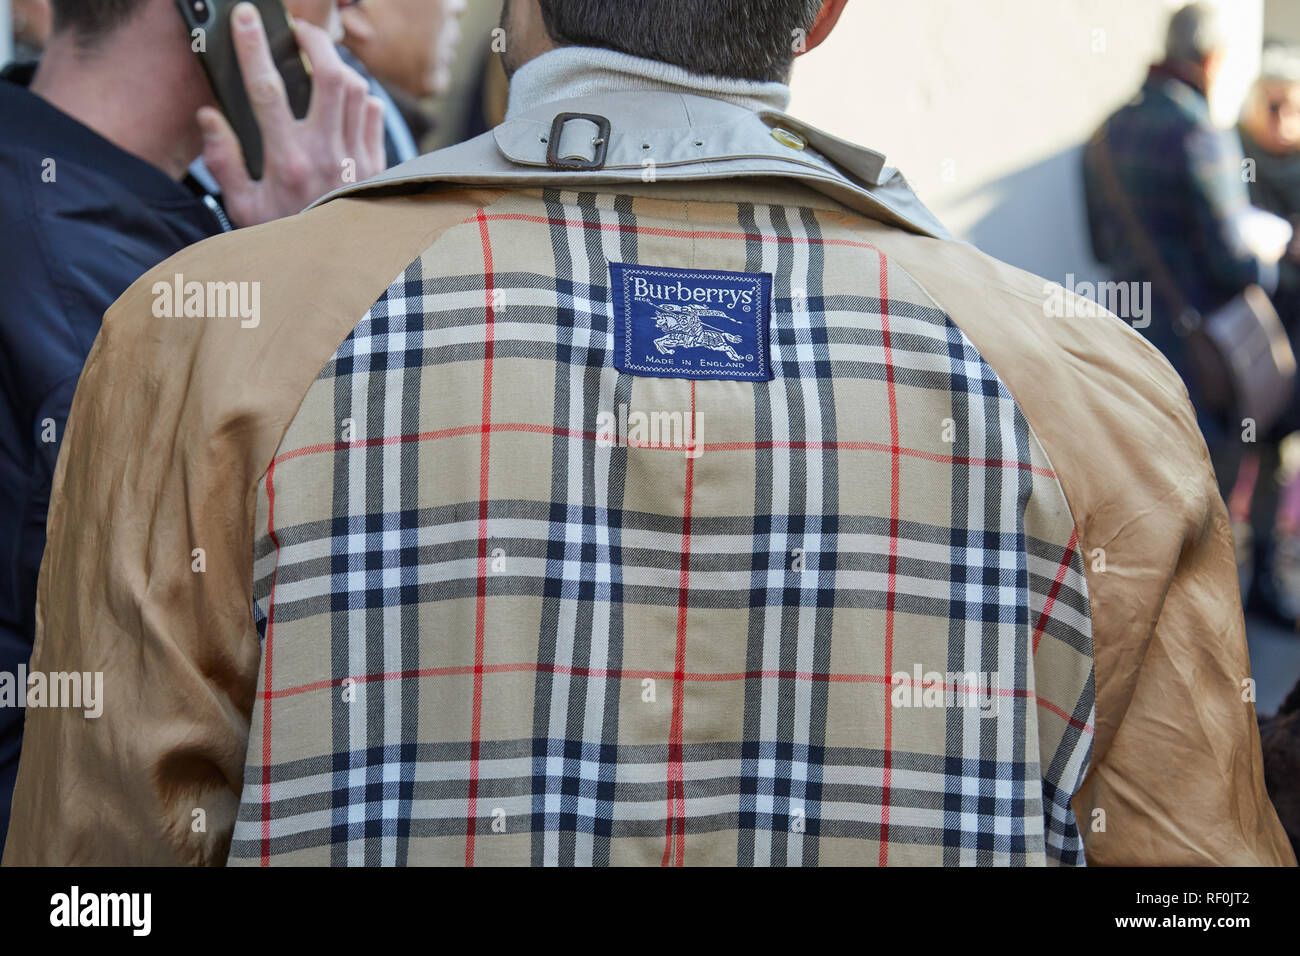 MILAN, ITALY - JANUARY 13, 2019: Man with beige Burberry trench coat before John Richmond fashion show, Milan Fashion Week street style - Stock Image